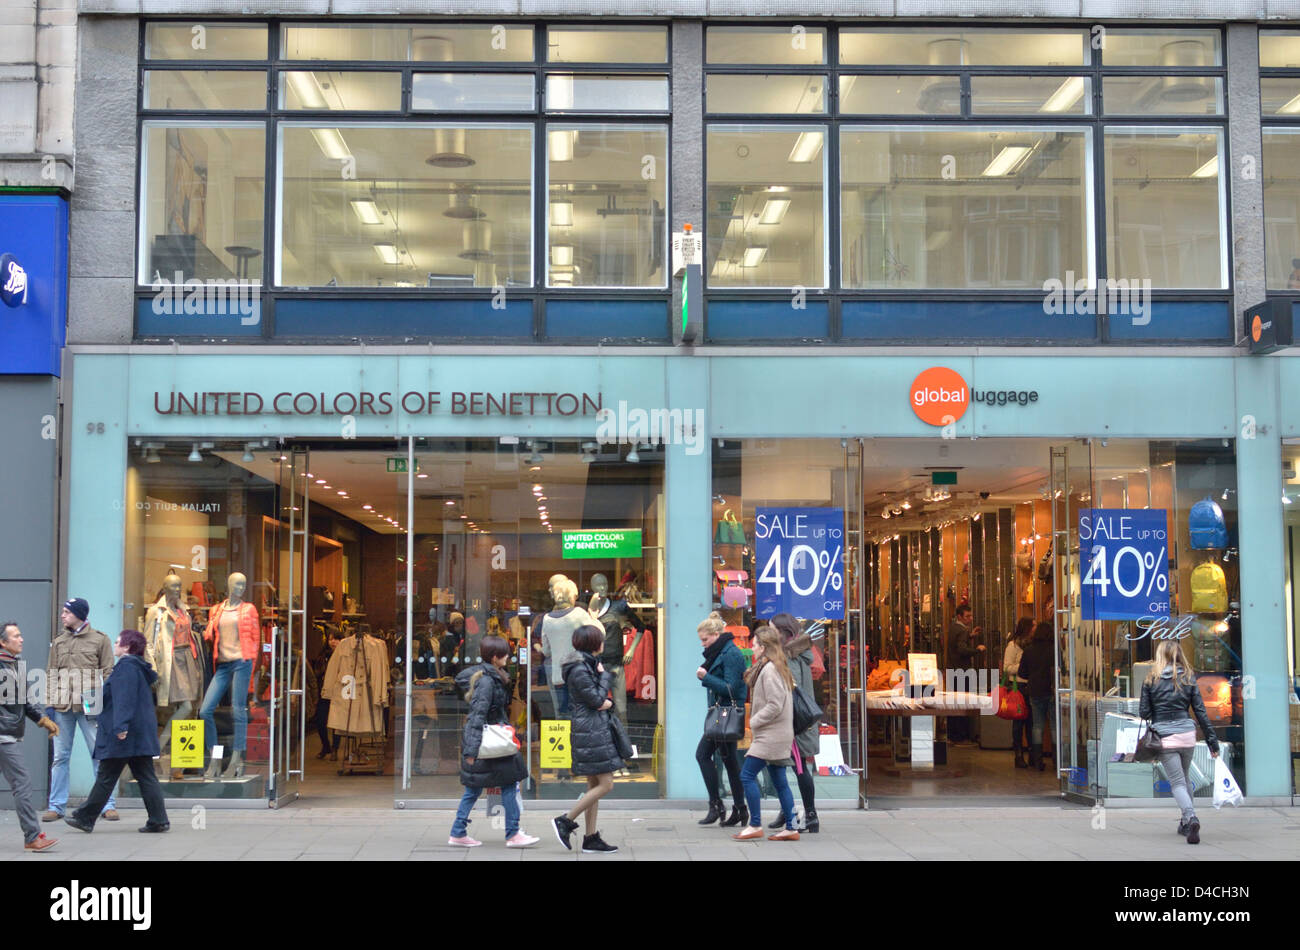 united colors of benetton fashion store in oxford street